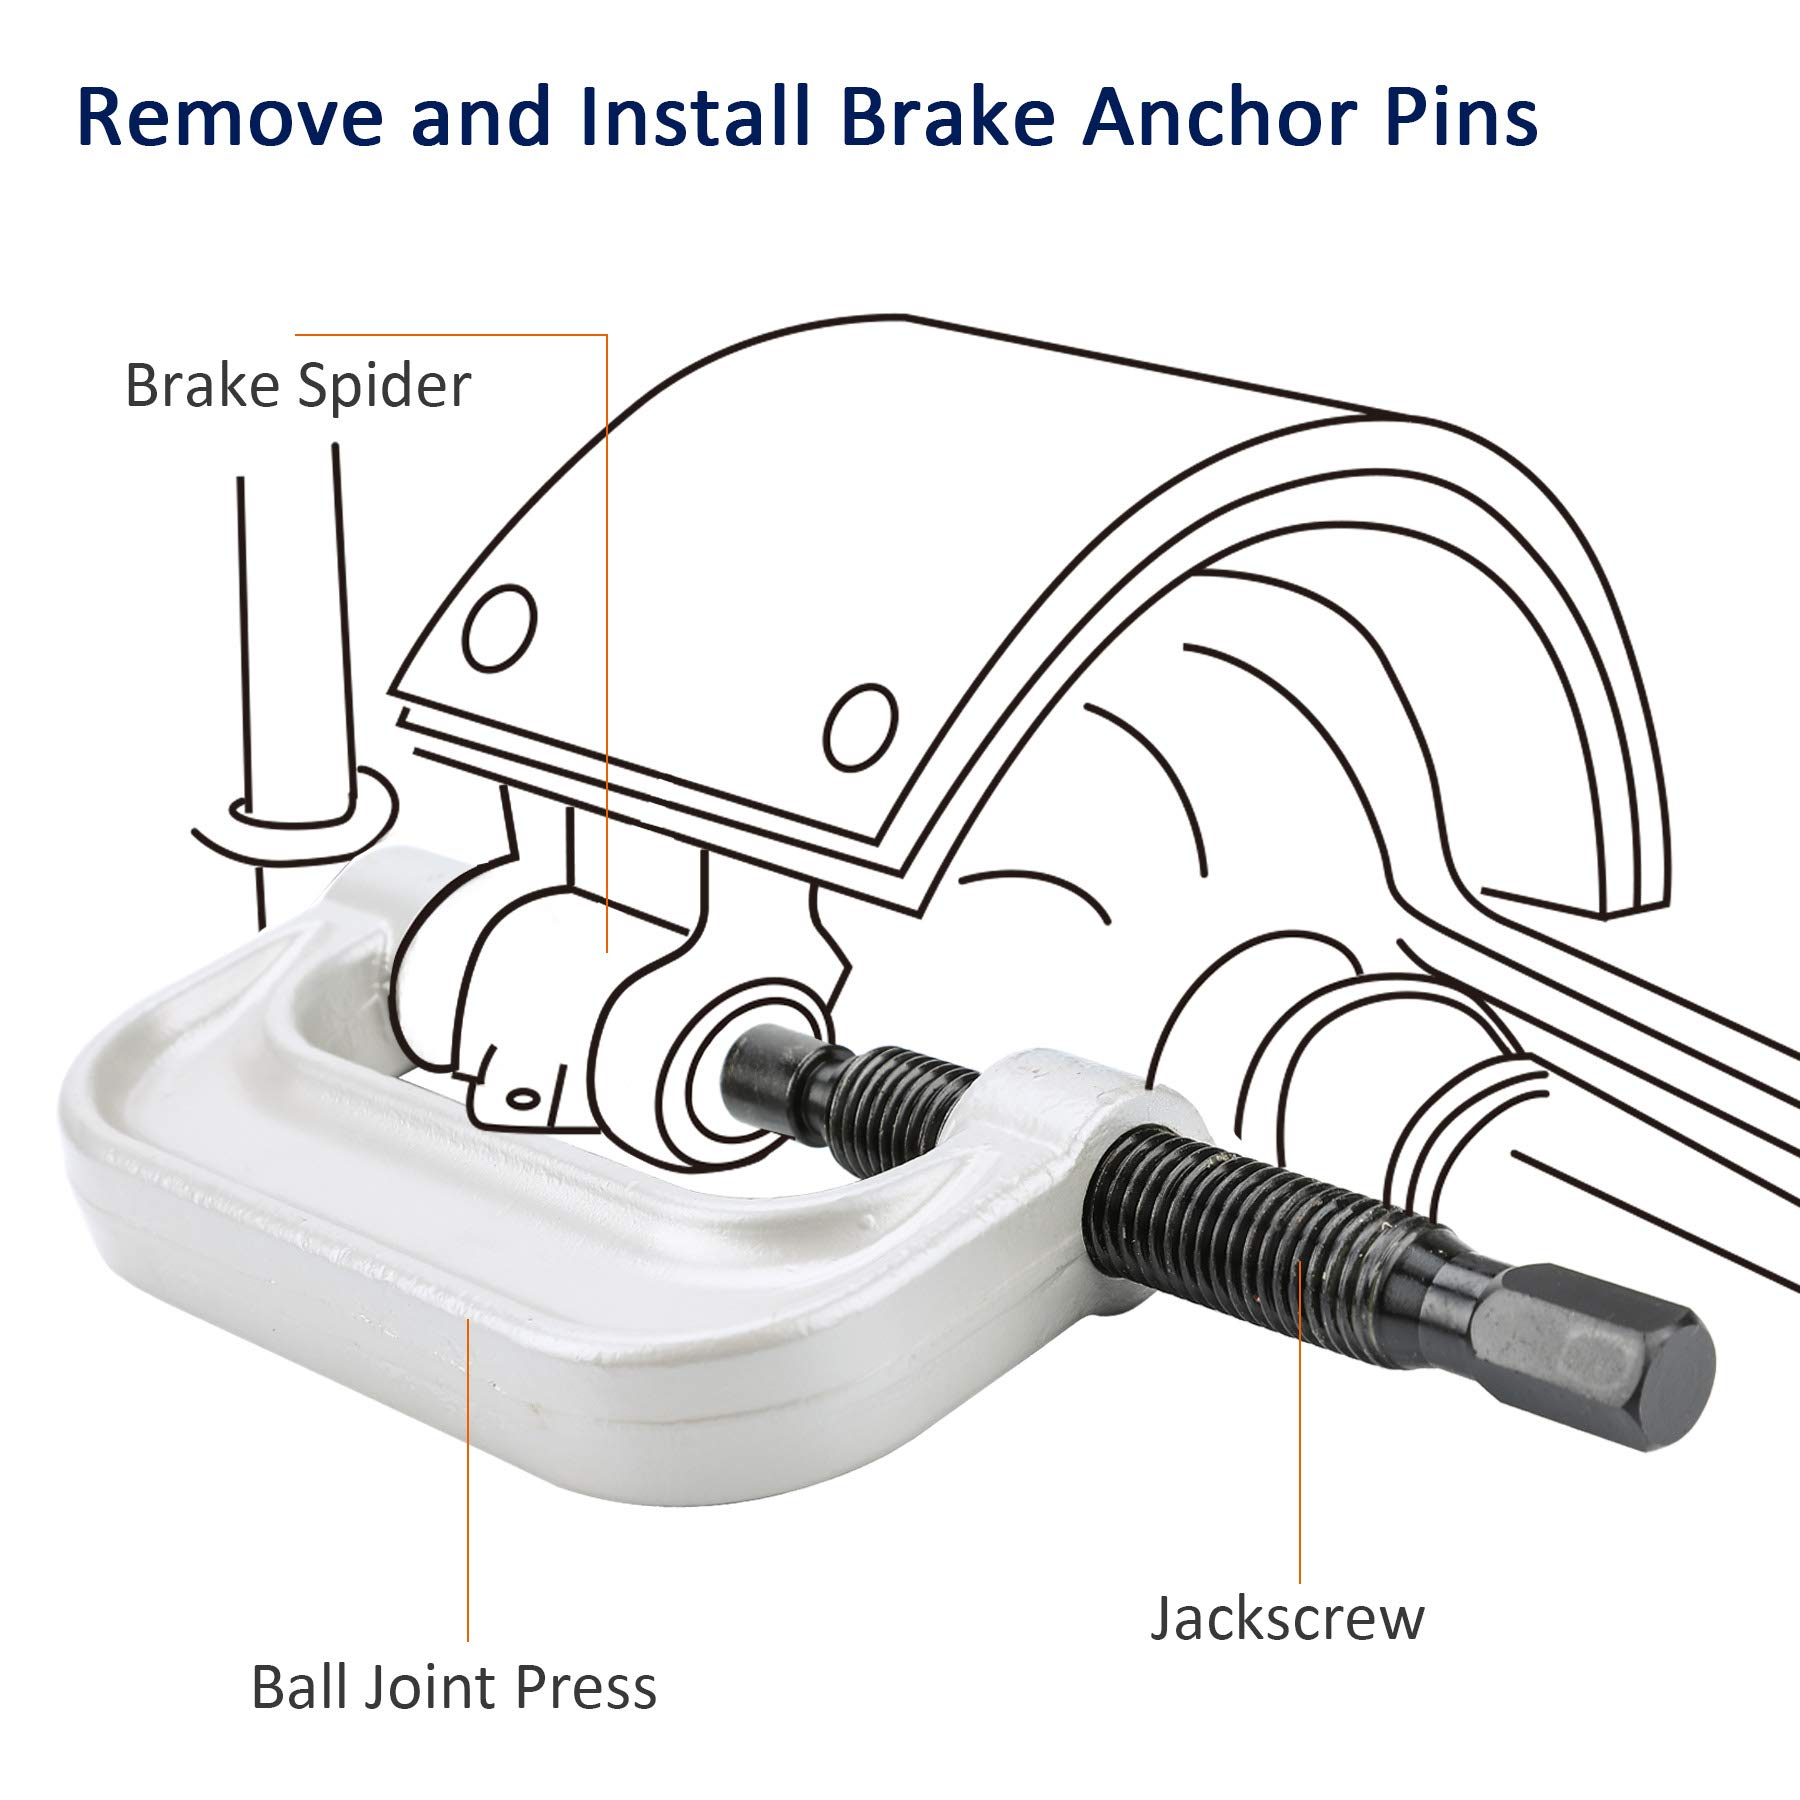 OrionMotorTech Heavy Duty Ball Joint Press & U Joint Removal Tool Kit with 4wd Adapters, for Most 2WD and 4WD Cars and Light Trucks (BK) by OrionMotorTech (Image #6)